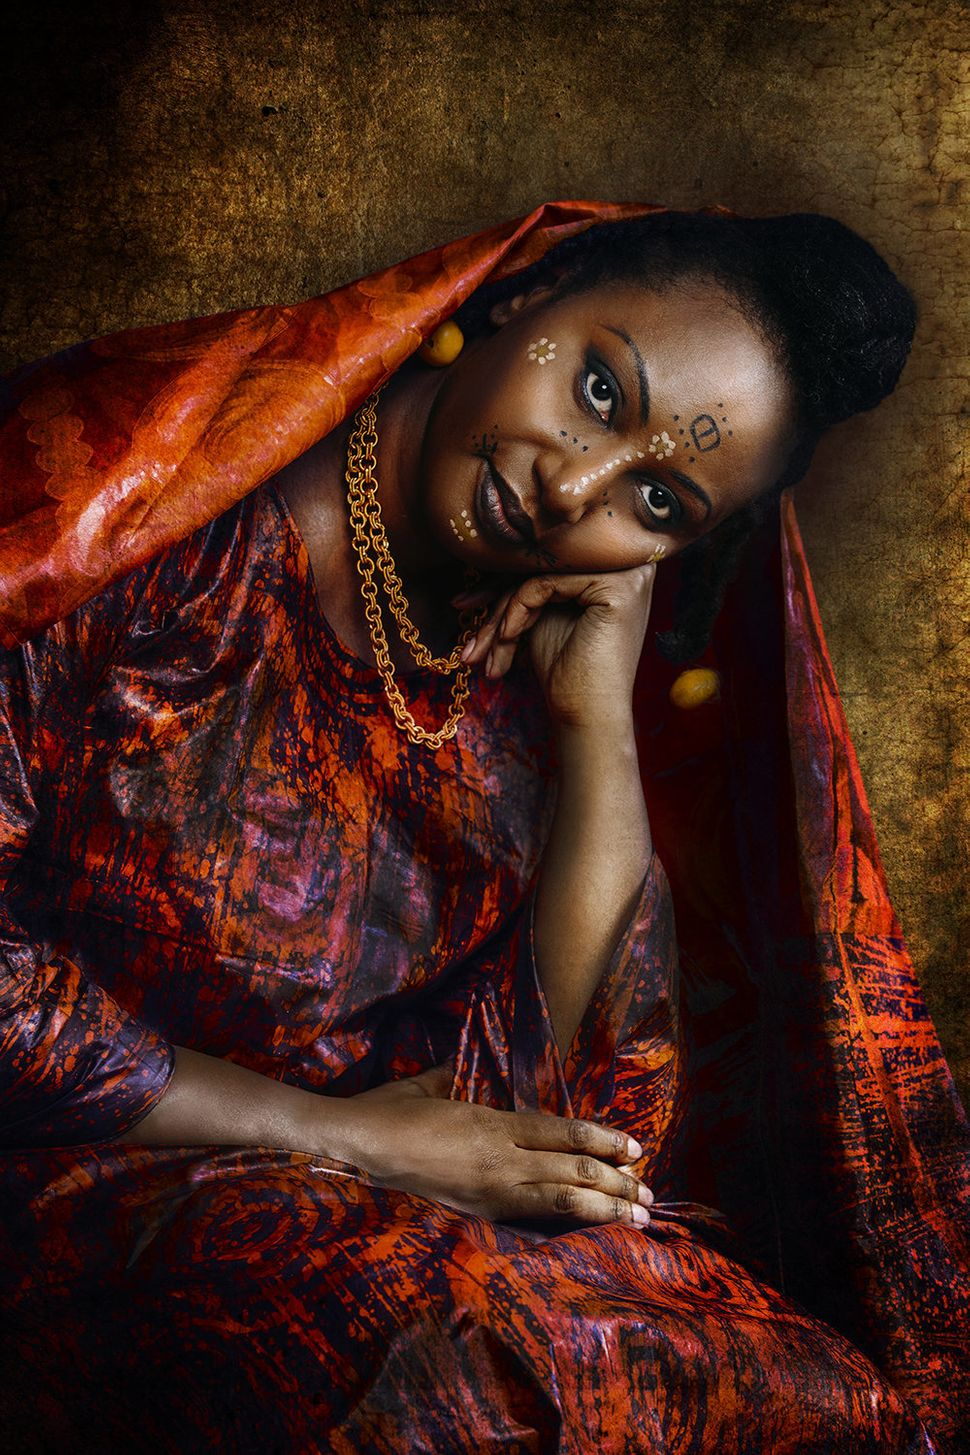 Nabou Fall, 46, works in communication and public relations. Shewas born in Dakar and raised in Abidjan.